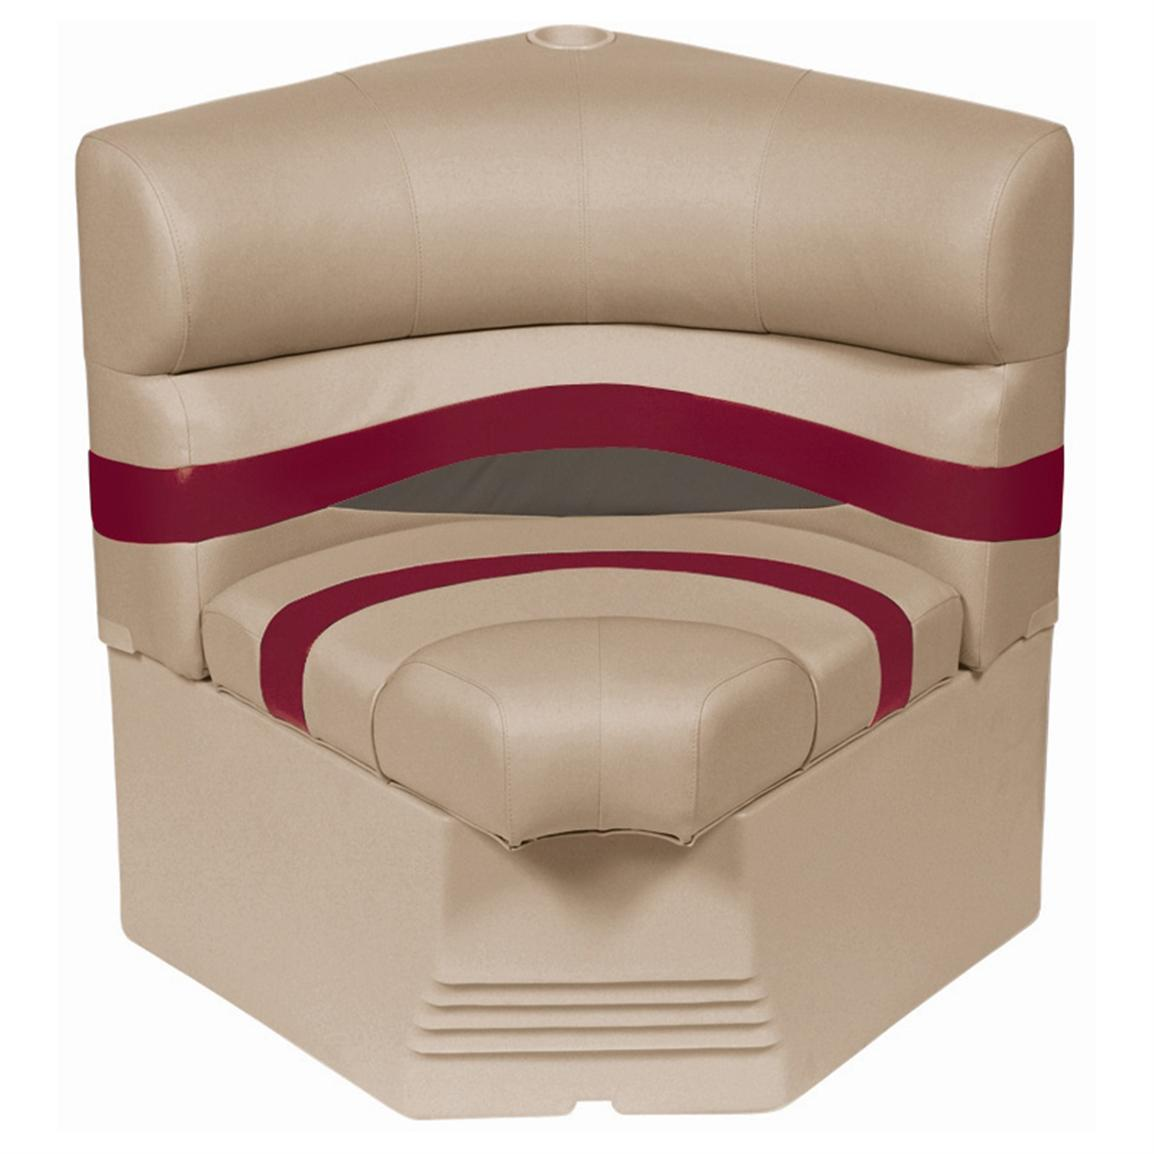 "Wise® Premier Pontoon 25"" Radius Corner Section Seat • Color E - Mocha Java Punch / Dark Red / Rock Salt"